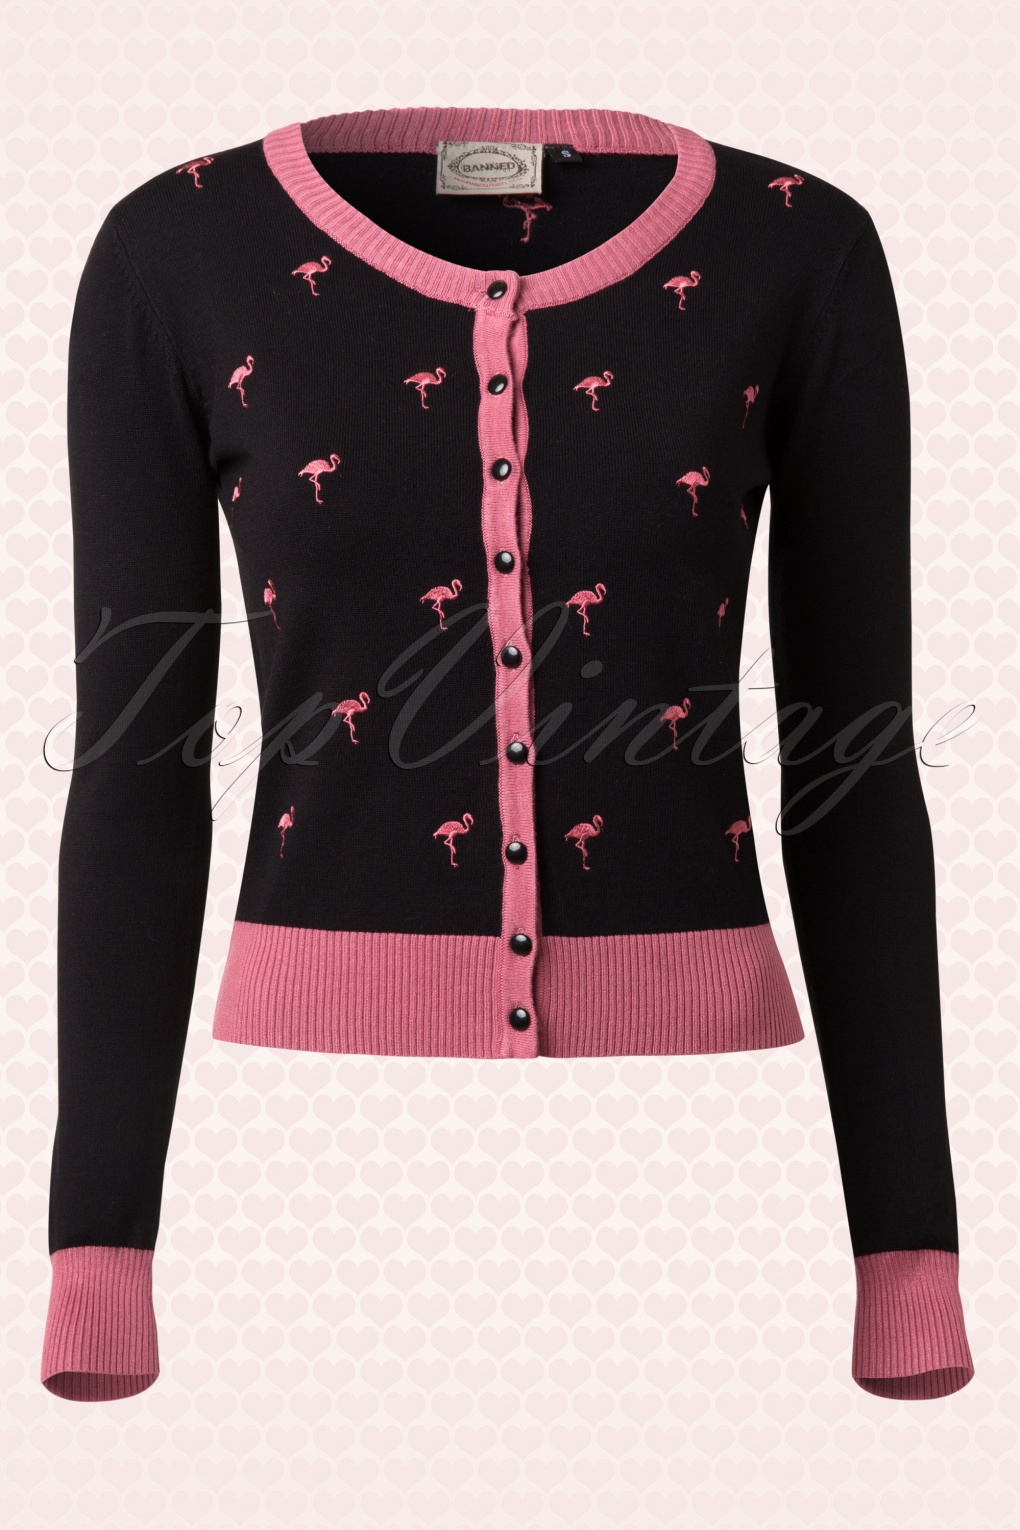 60s Golden Touch Flamingo Cardigan in Black and Pink